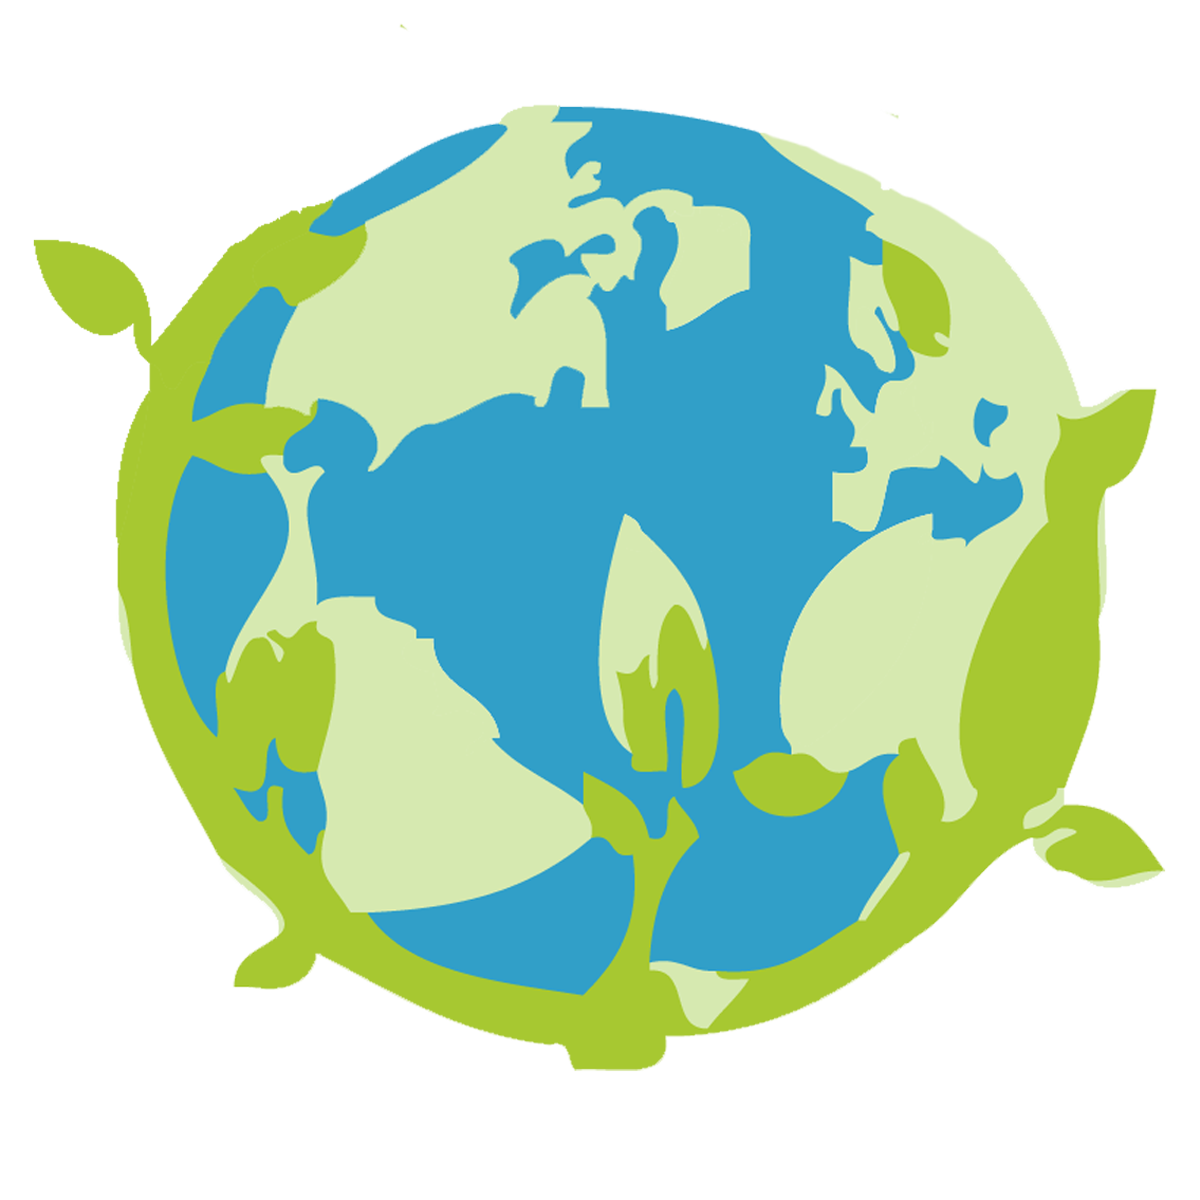 earth day clipart green